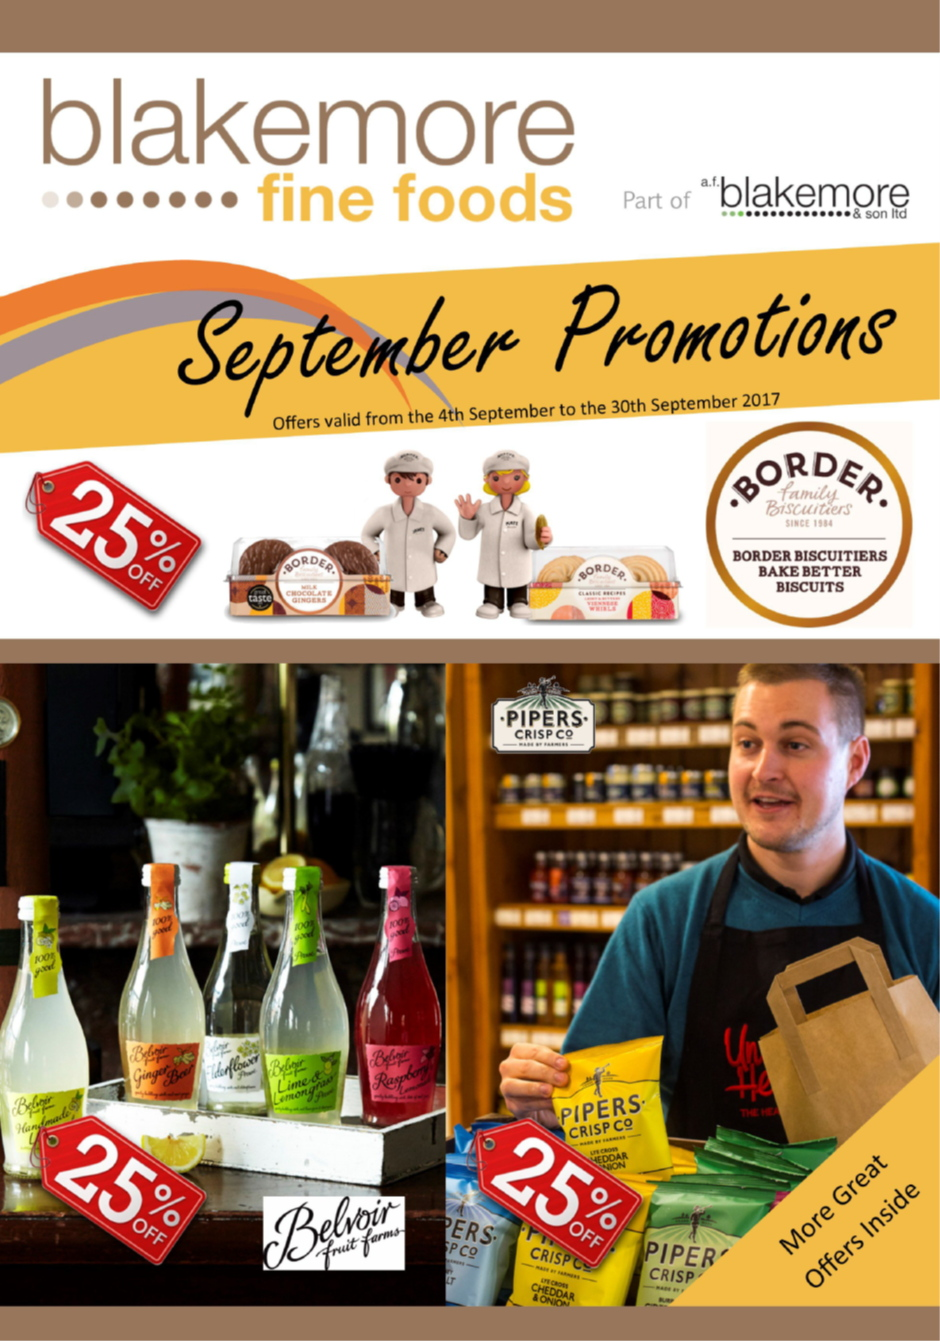 Blakemore_Fine_Foods_Promotions_September_2017